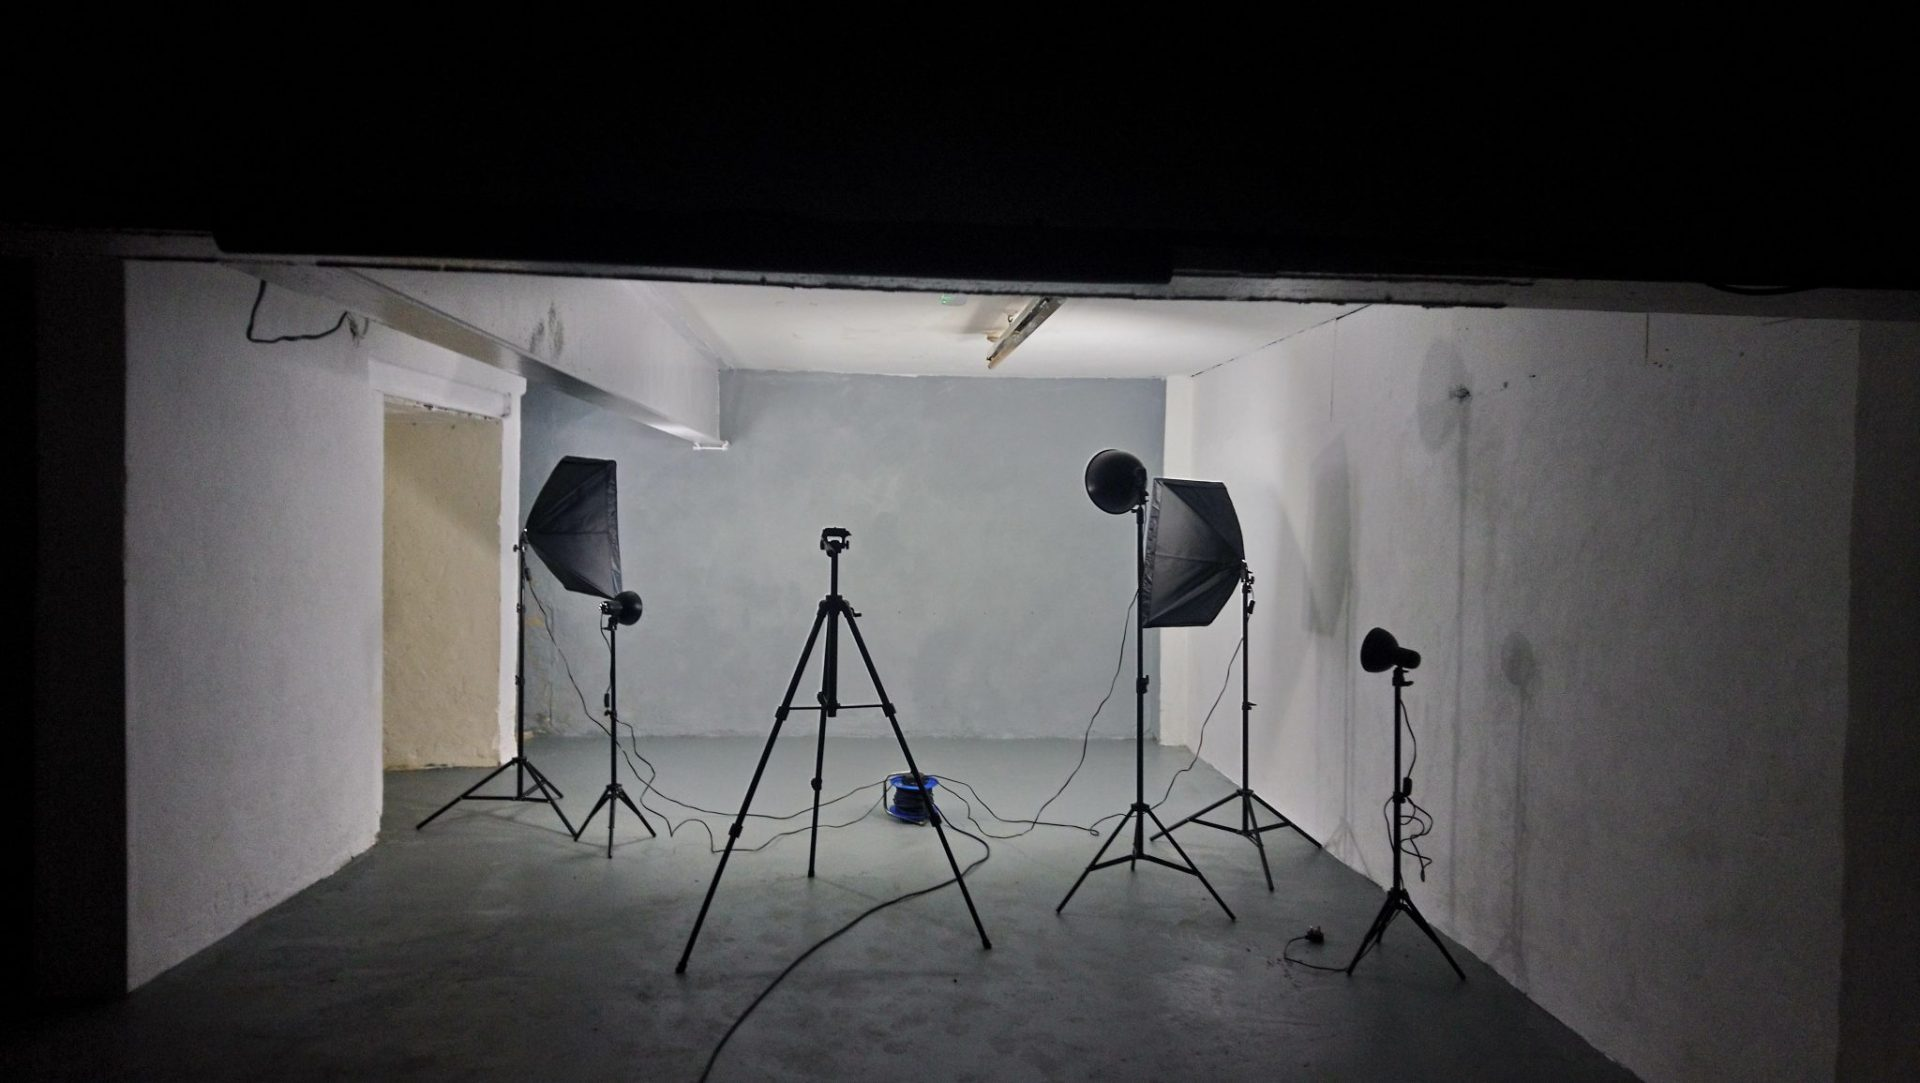 Affordable product and fashion photography studio Leeds centre. We have facilities for a small photographic studio, using your own equipment or our lights. Ideal for both product or fashion photography.